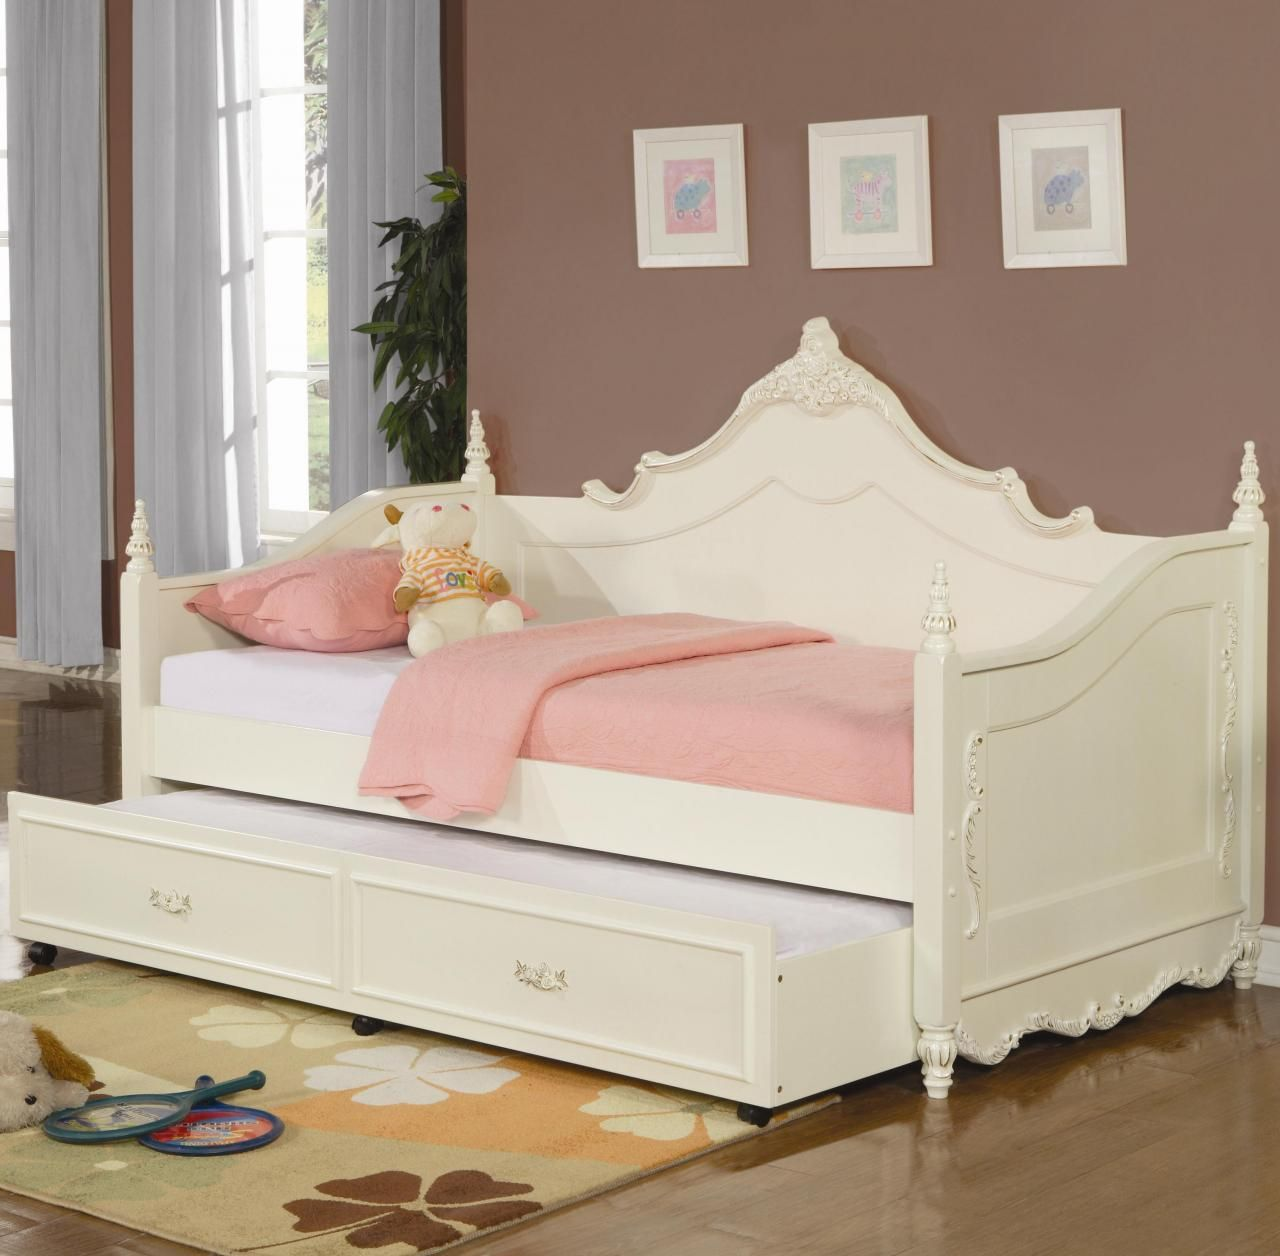 daybed covers 11 facts which you should to know for daybeds